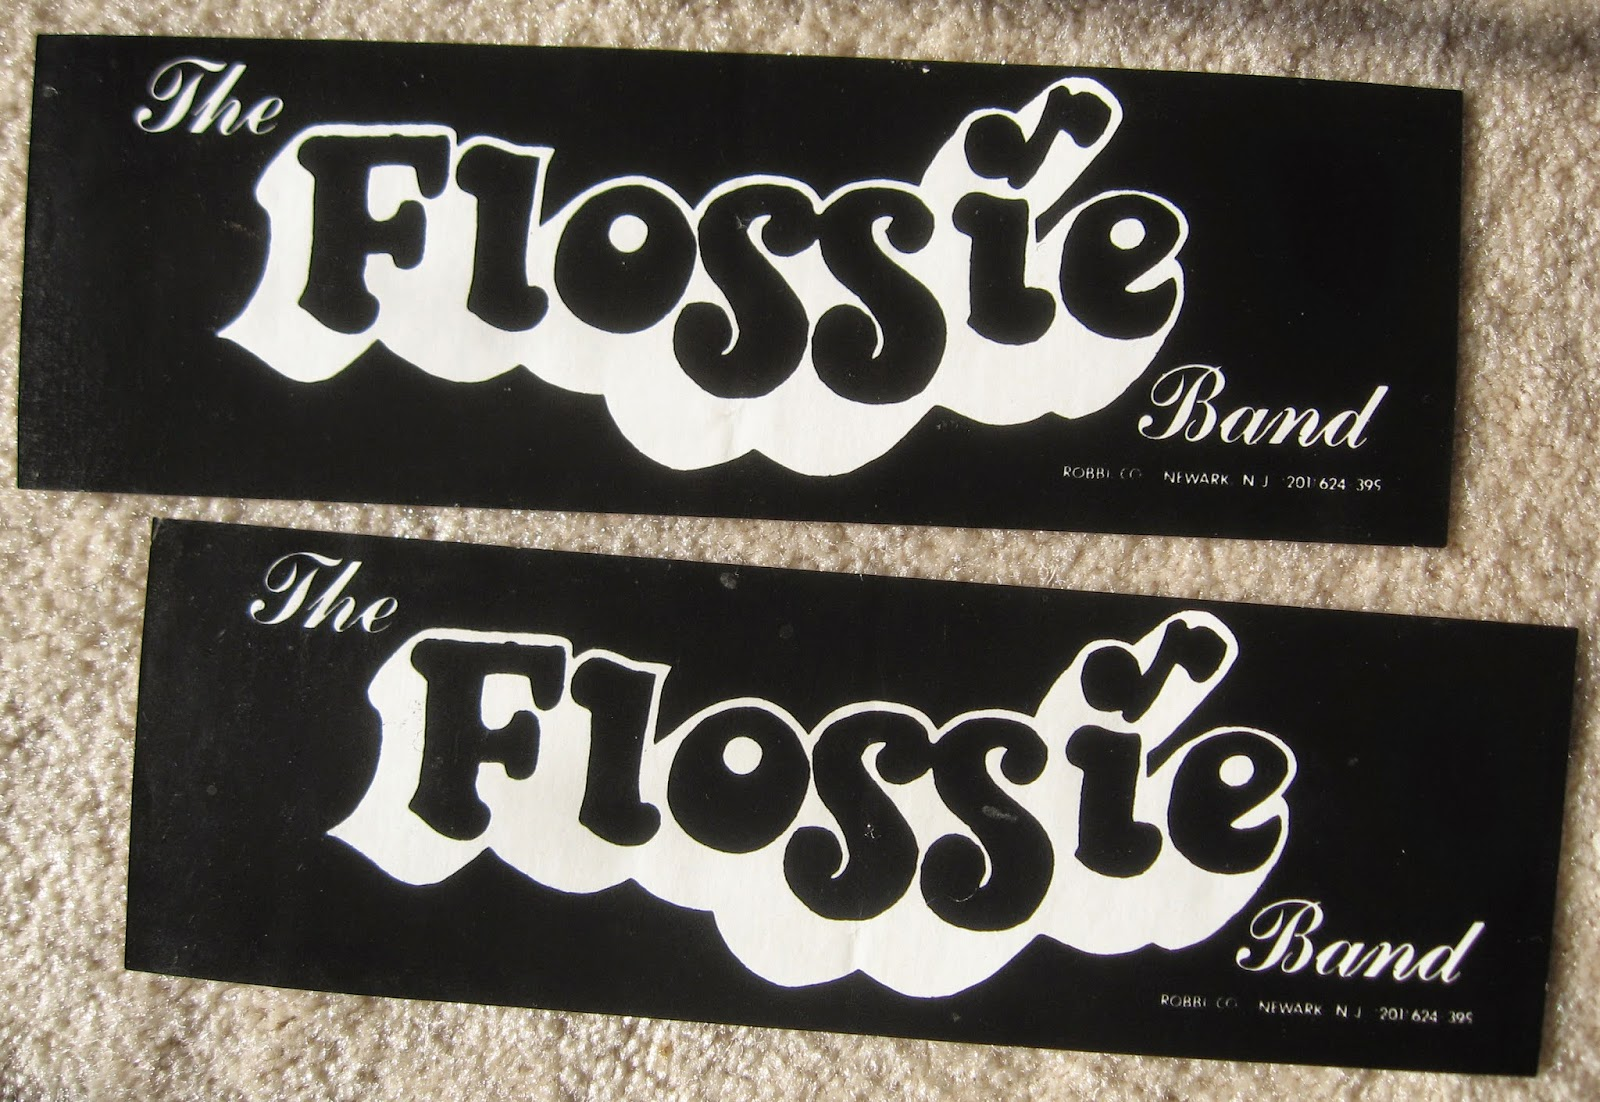 Just found a few Flossie bumper stickers in some of my stuff... pretty neat!